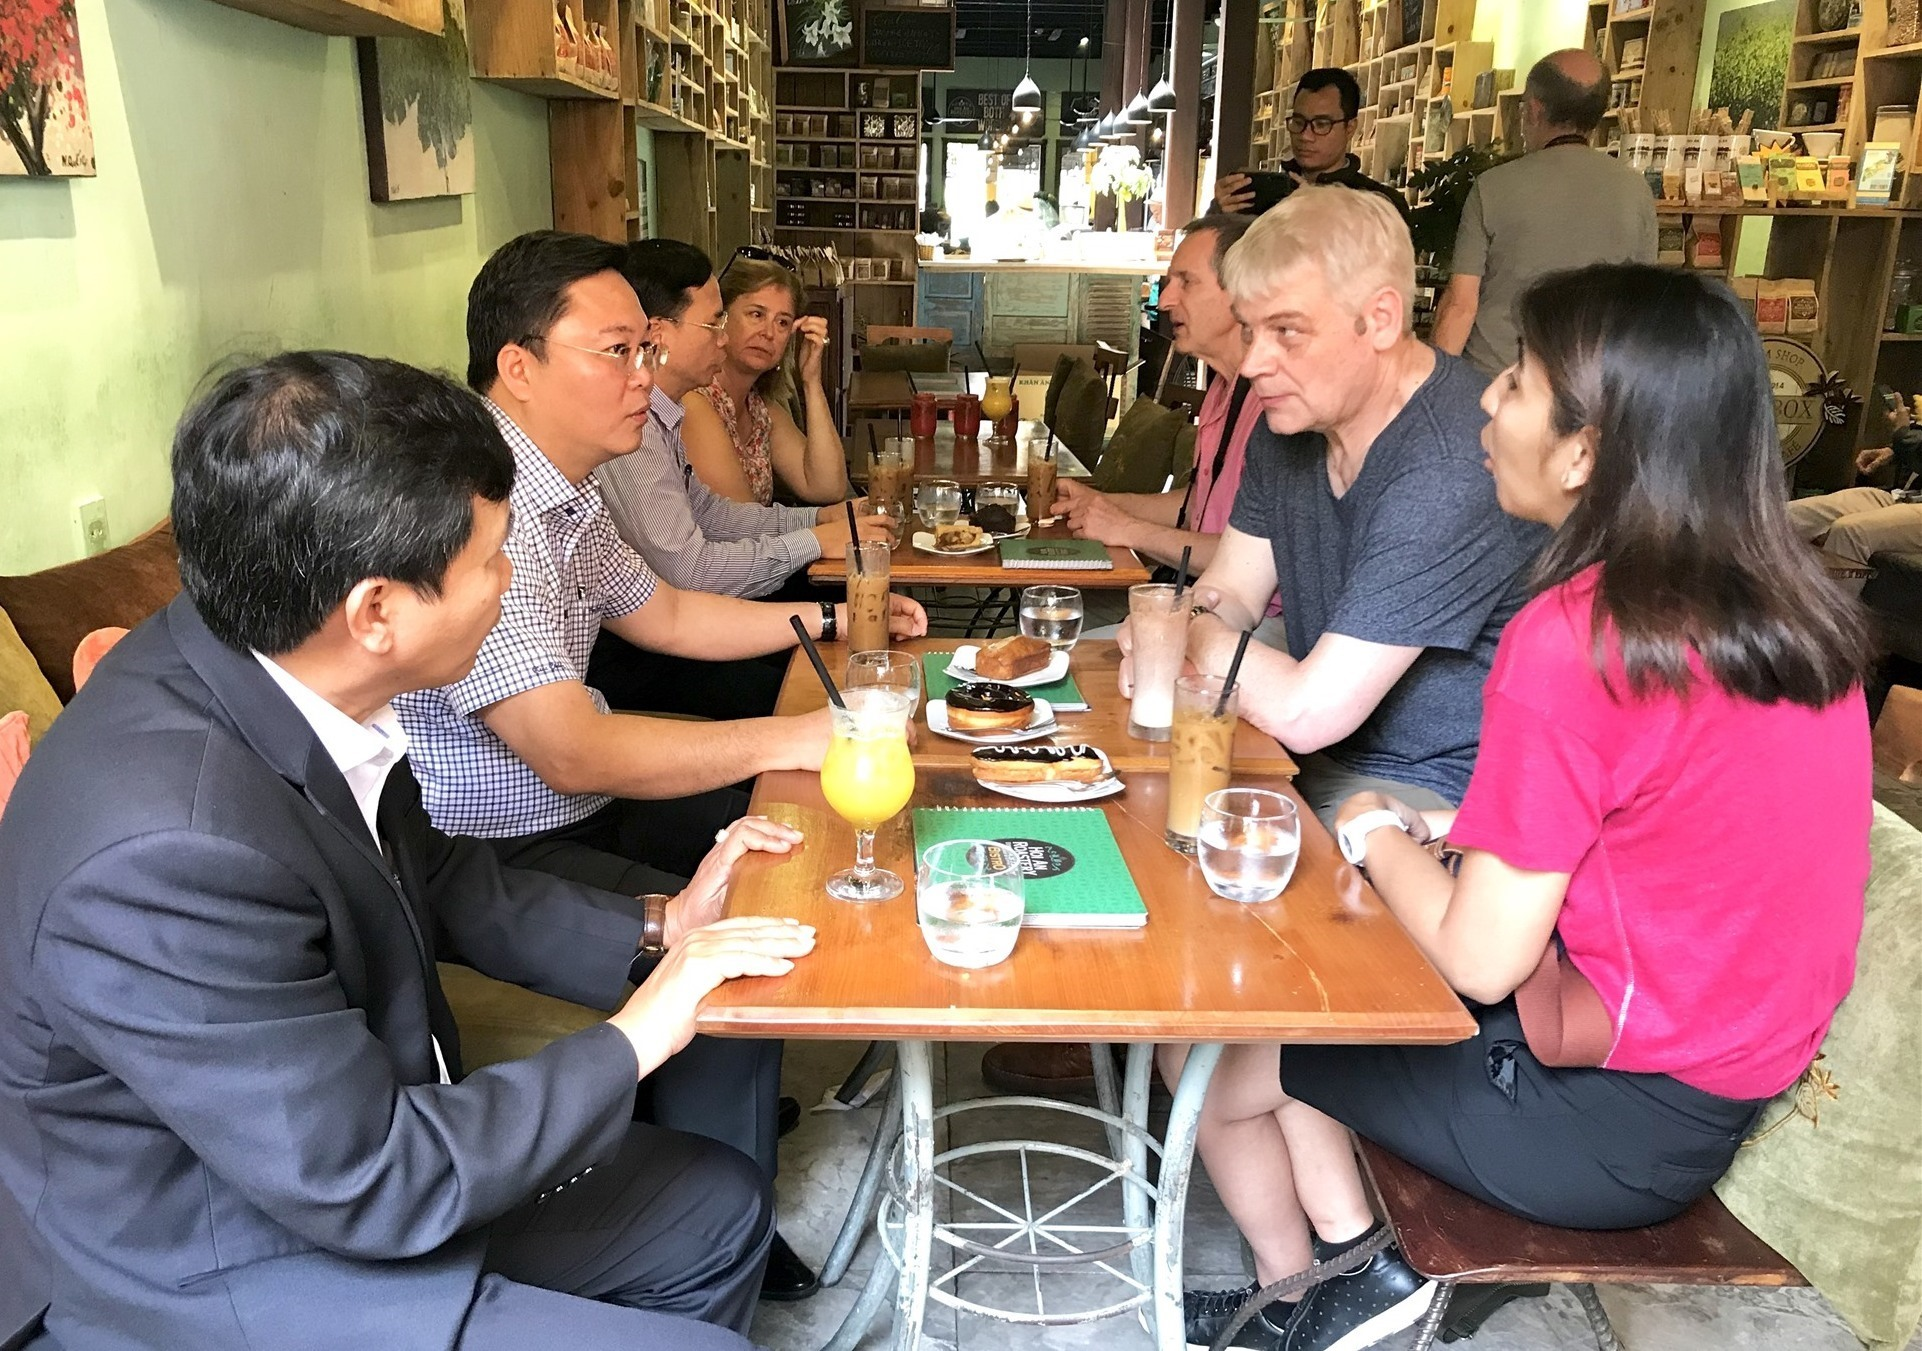 Quang Nam leaders and visitors have an intimate talk in a coffee house in Hoi An.